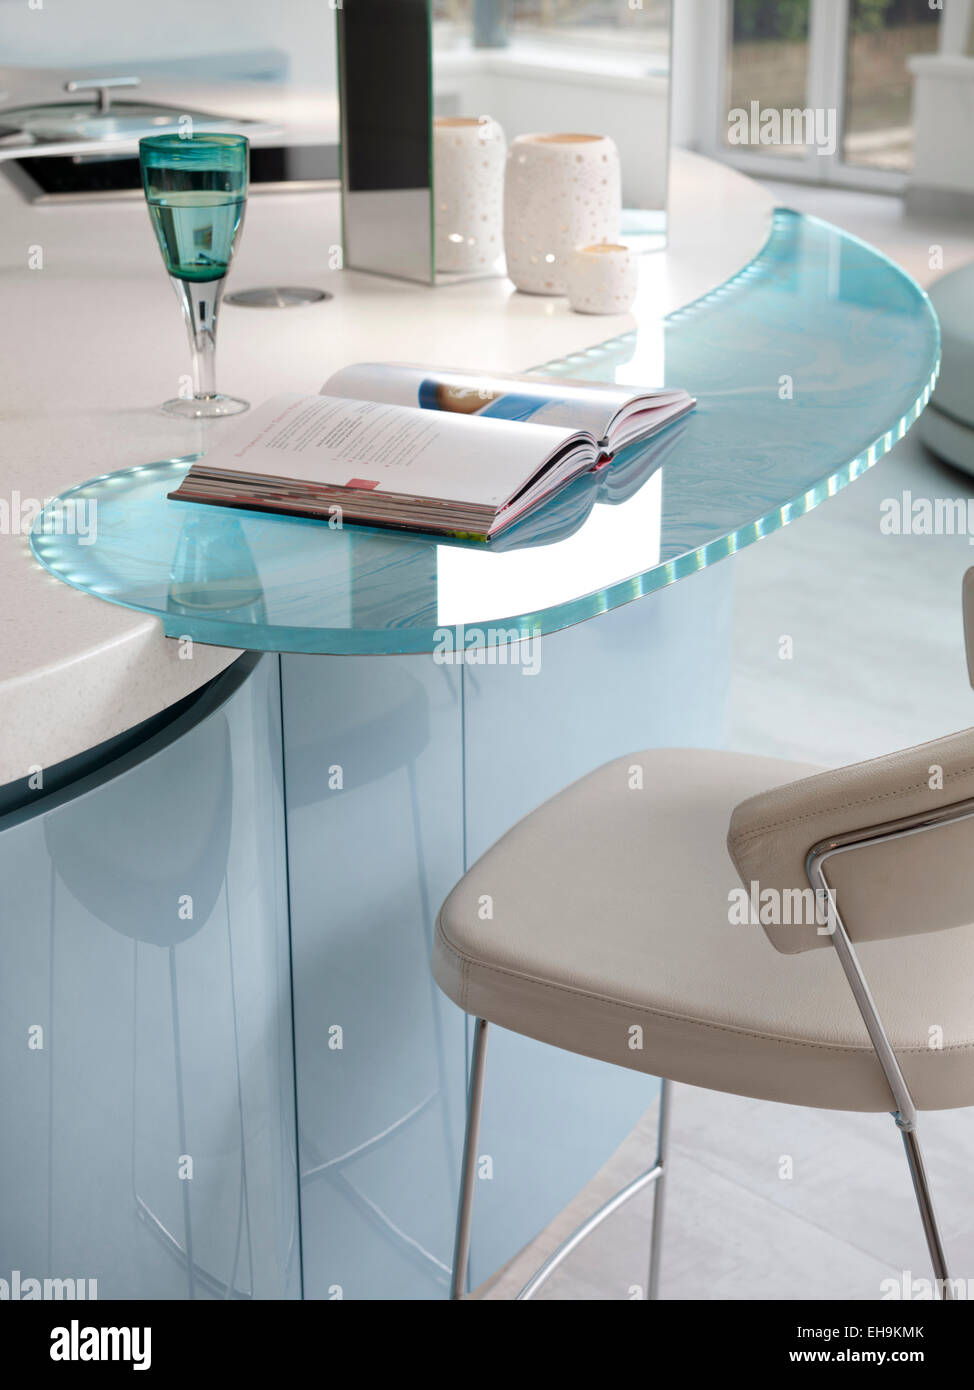 Detail Of Blue And White Curved Glass Inset Breakfast Bar